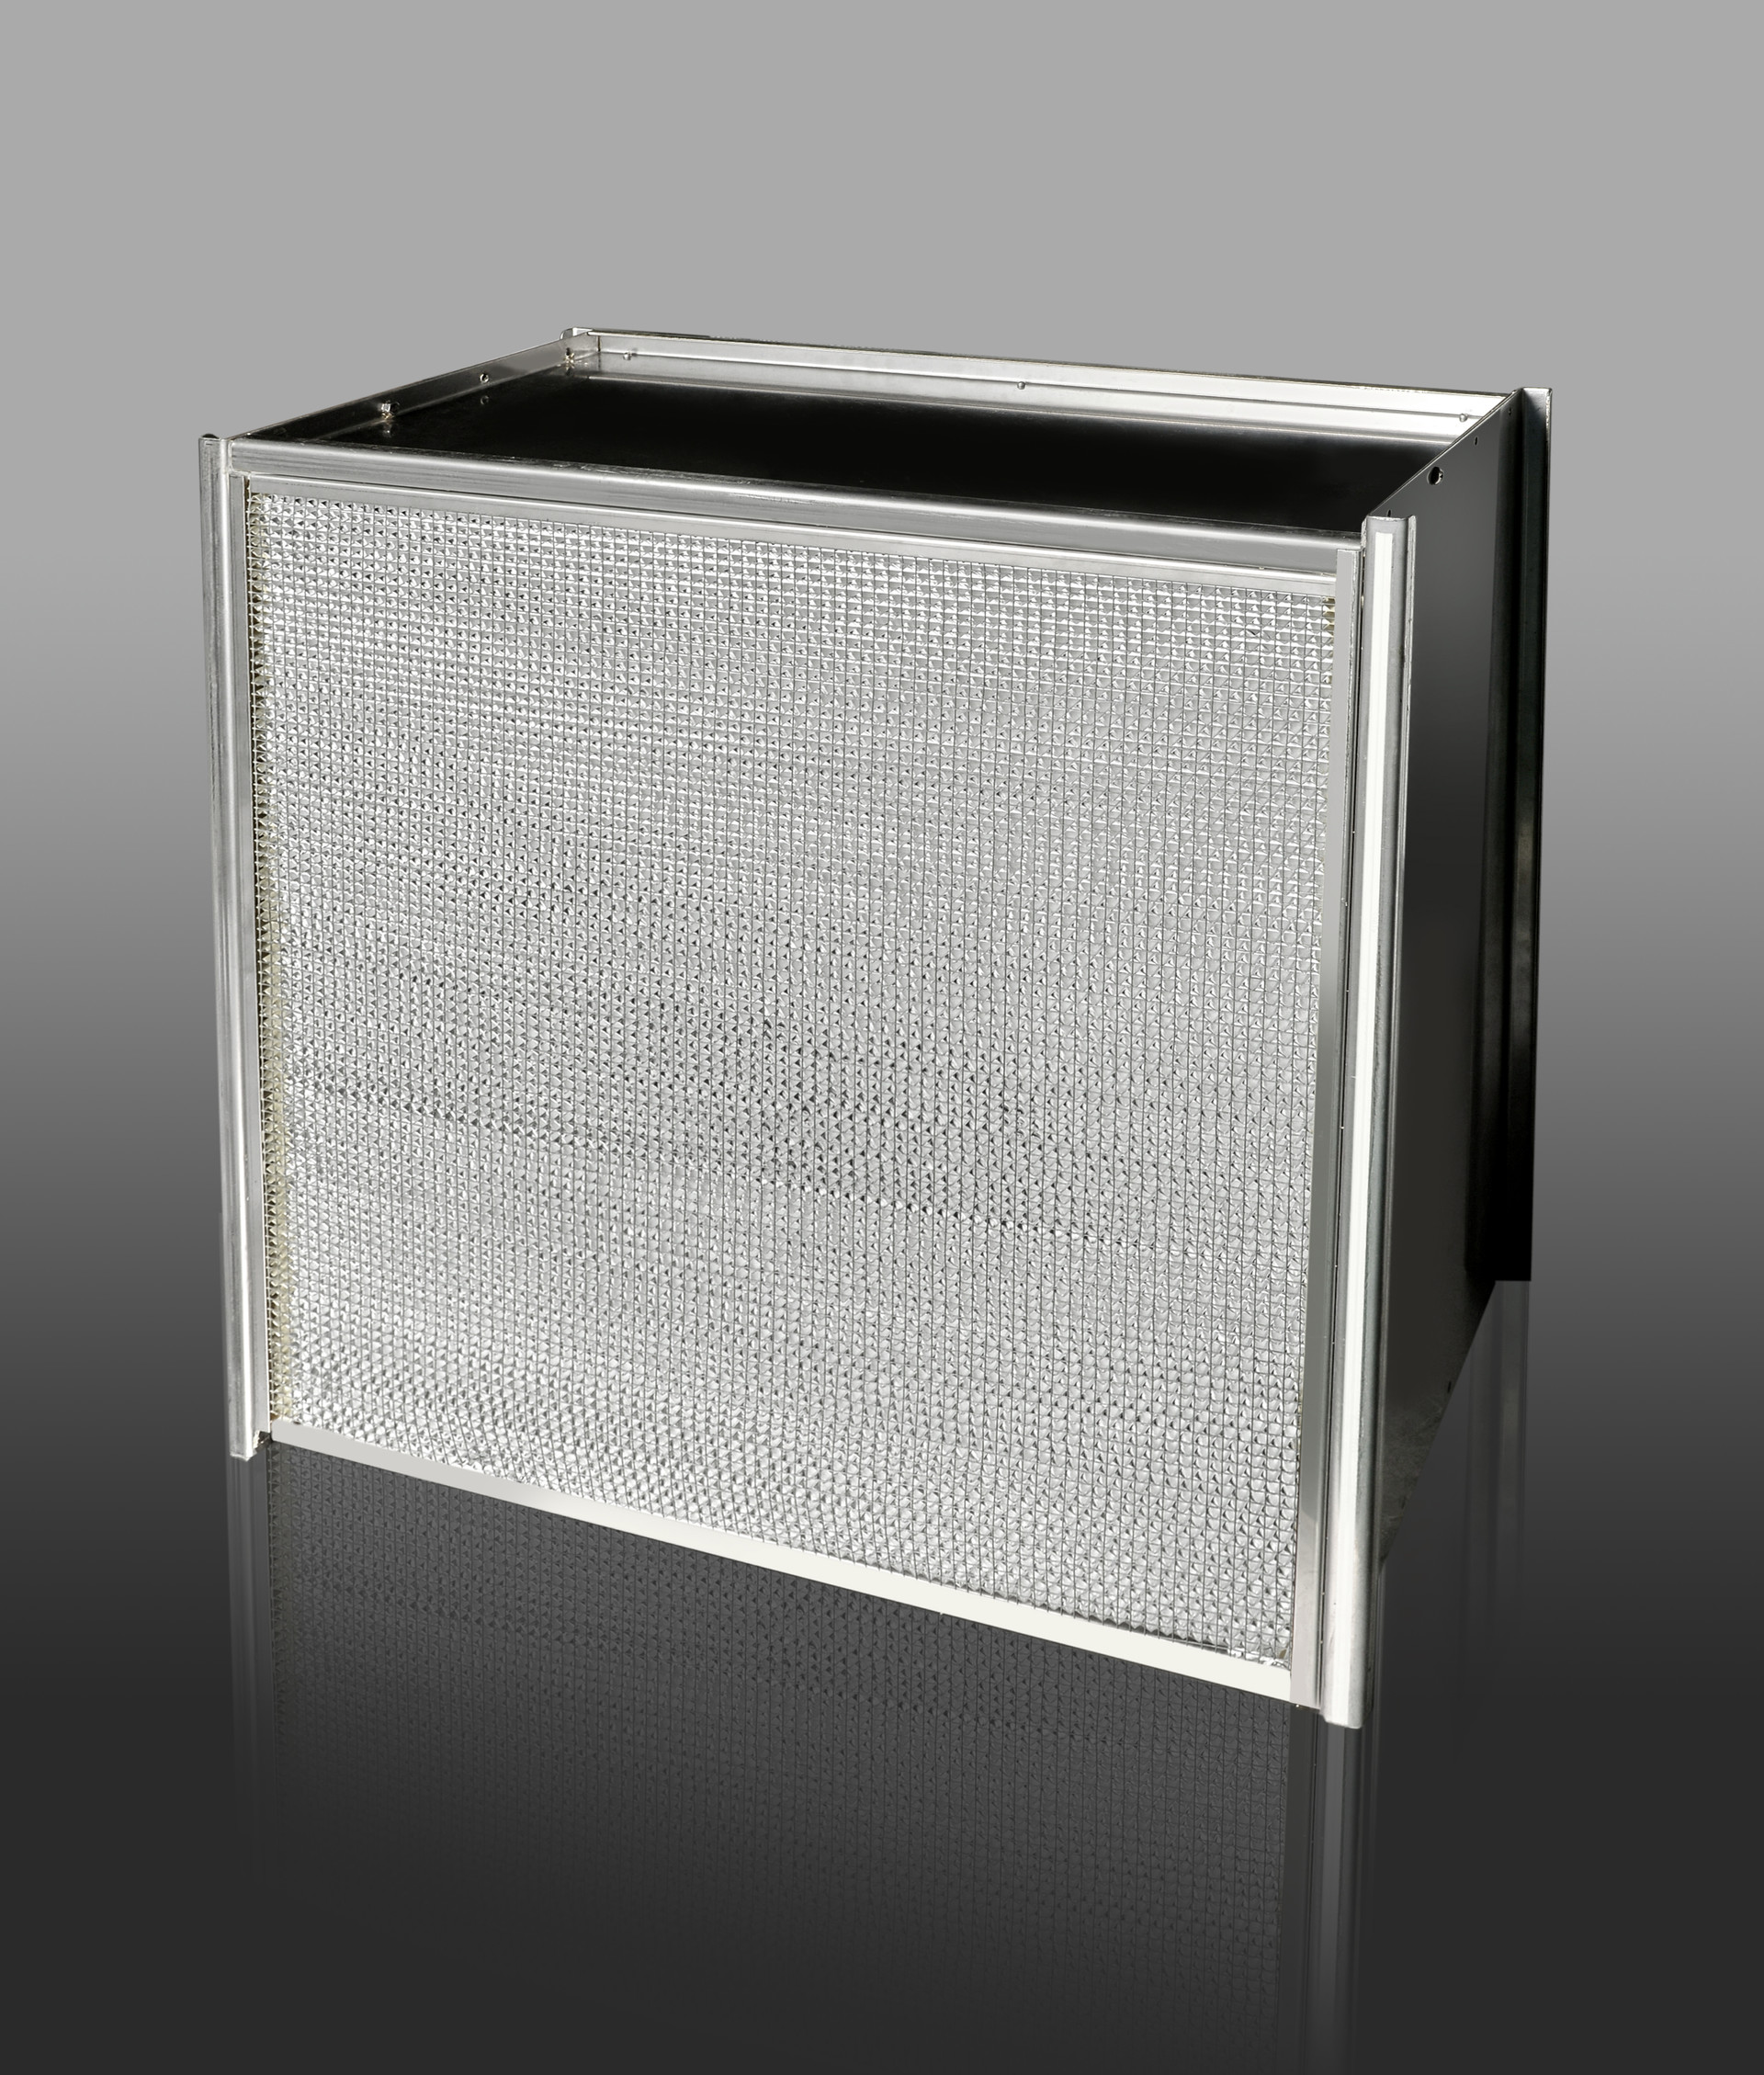 HEPA Filter for Nuclear Power Plant